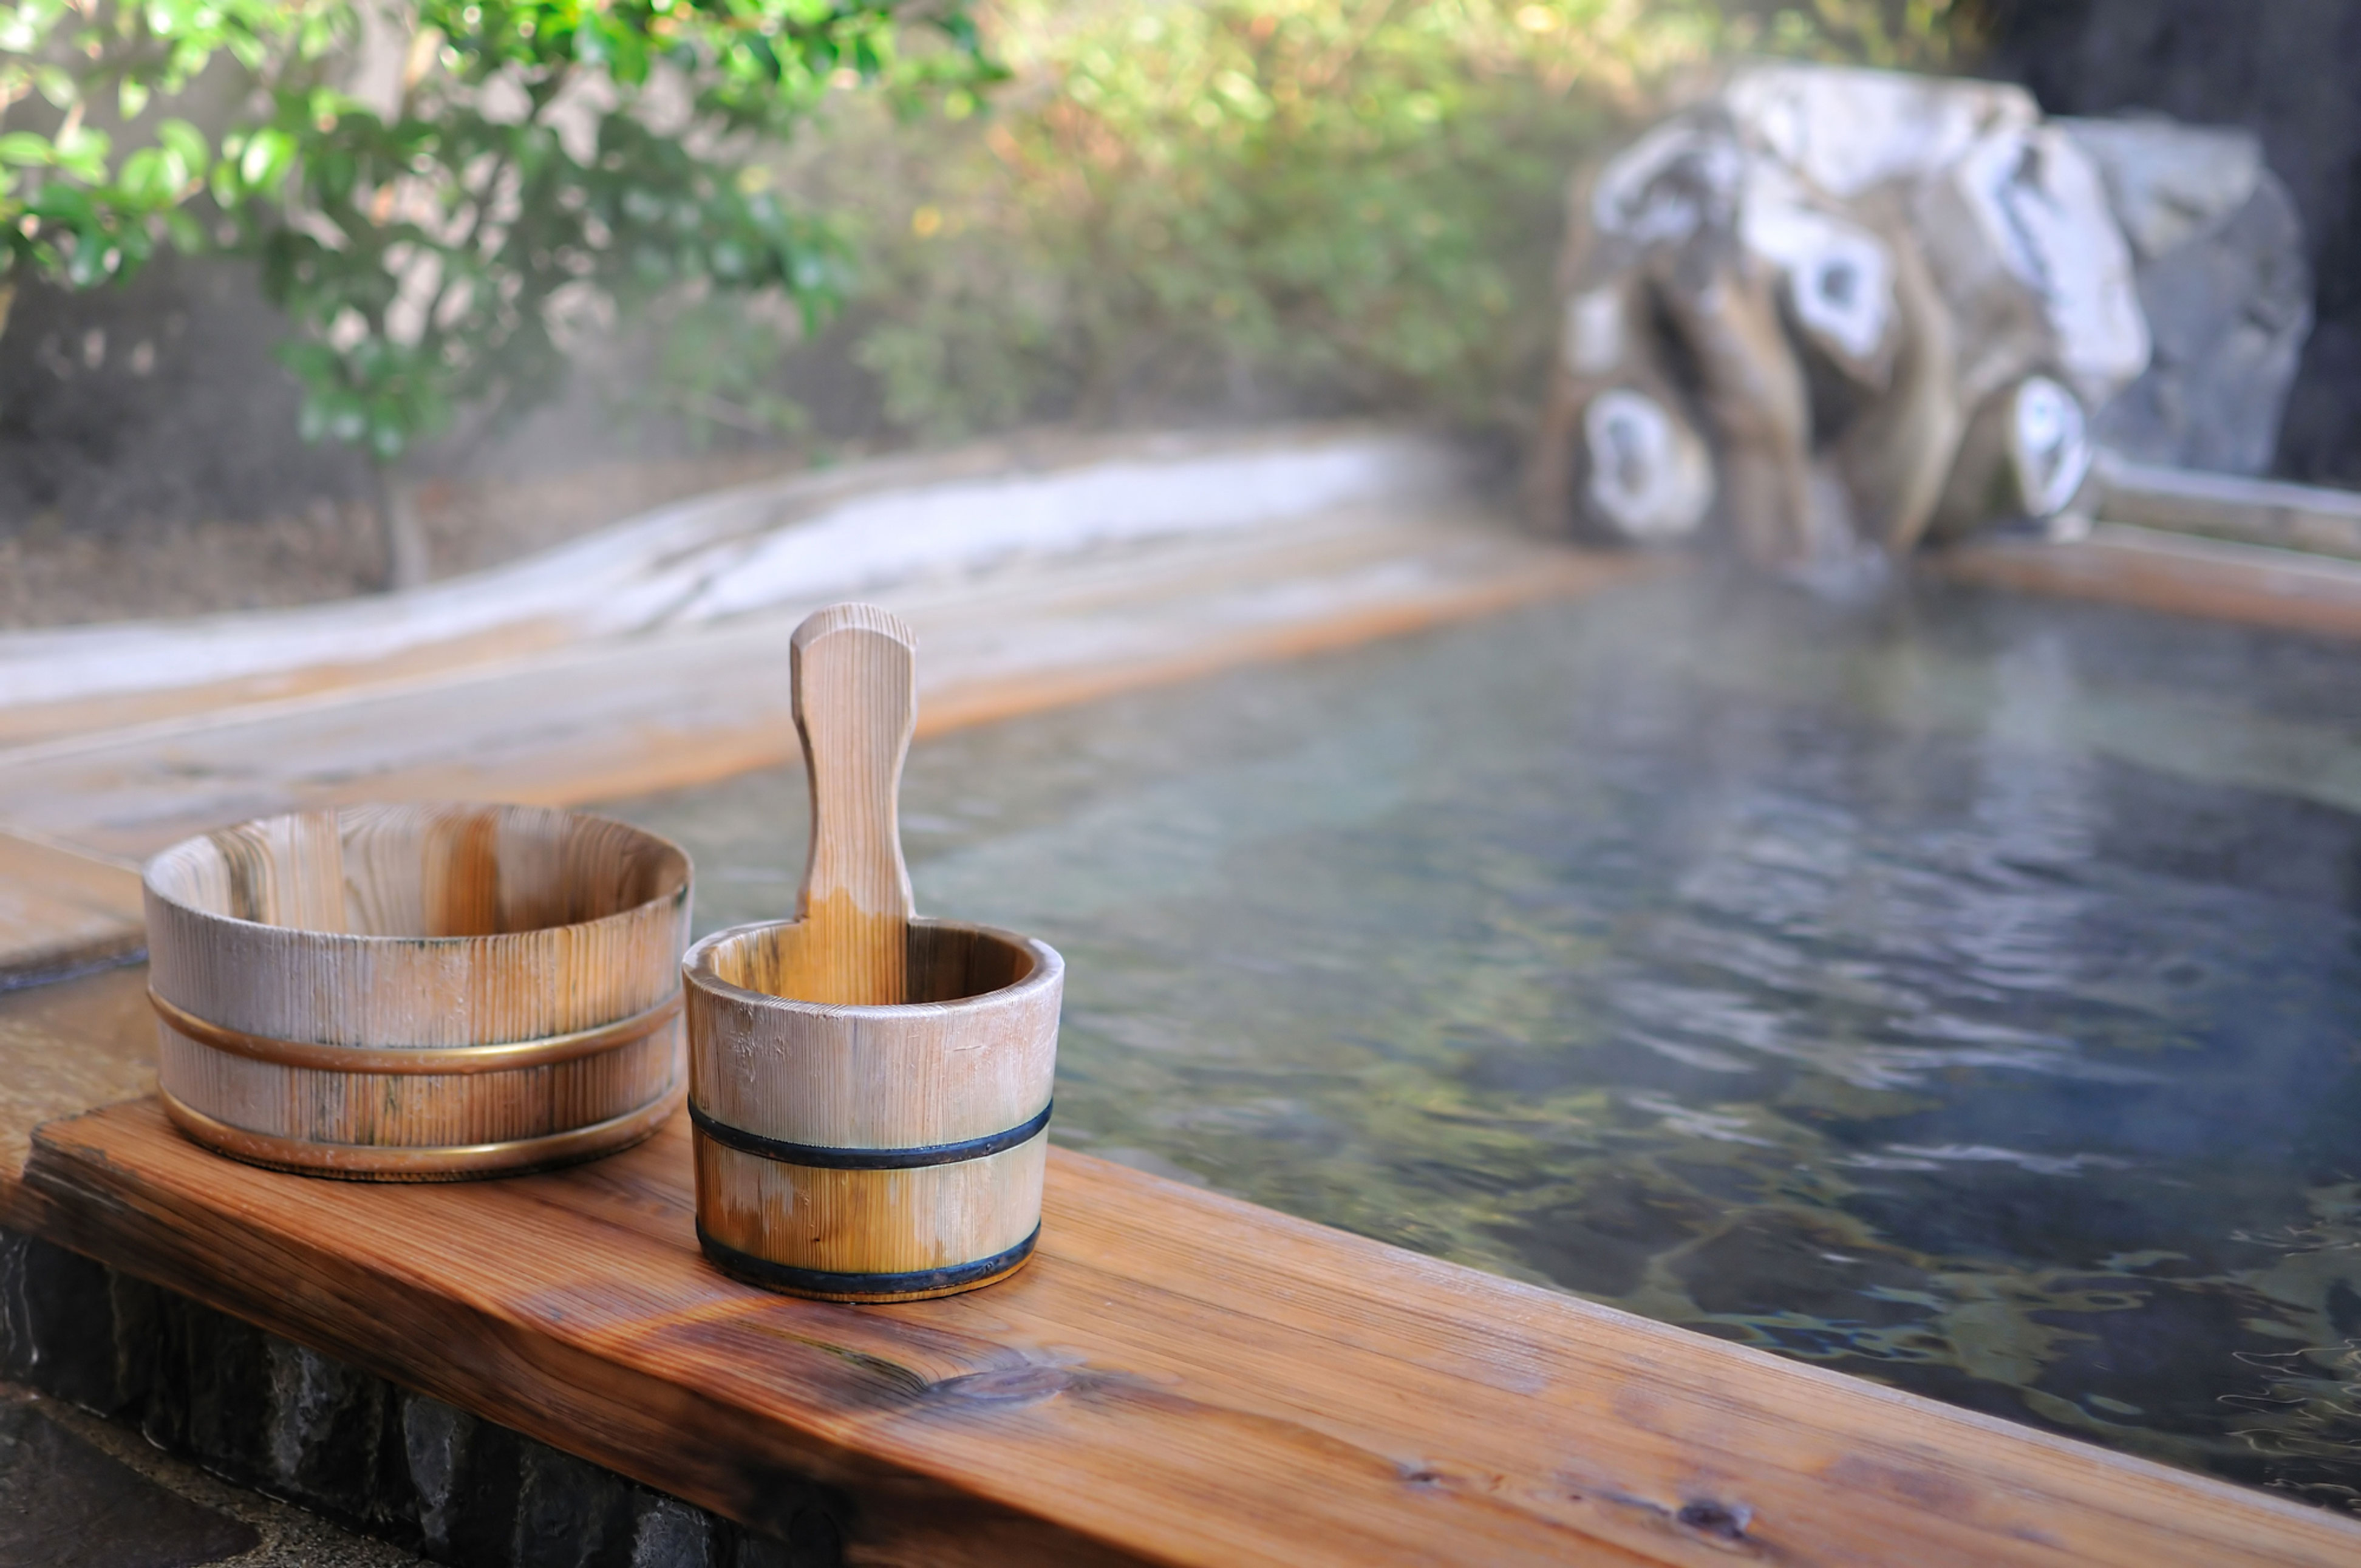 Ancient Foot Bath Experience